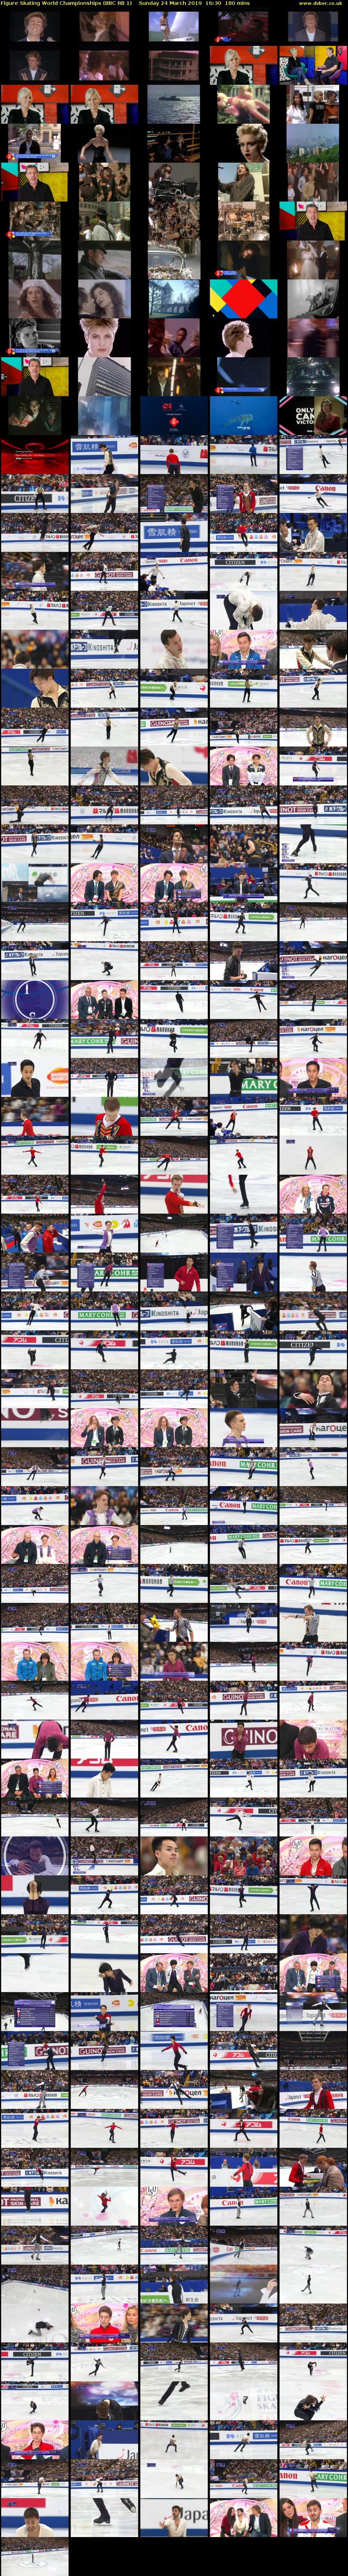 Figure Skating World Championships (BBC RB 1) Sunday 24 March 2019 16:30 - 19:30